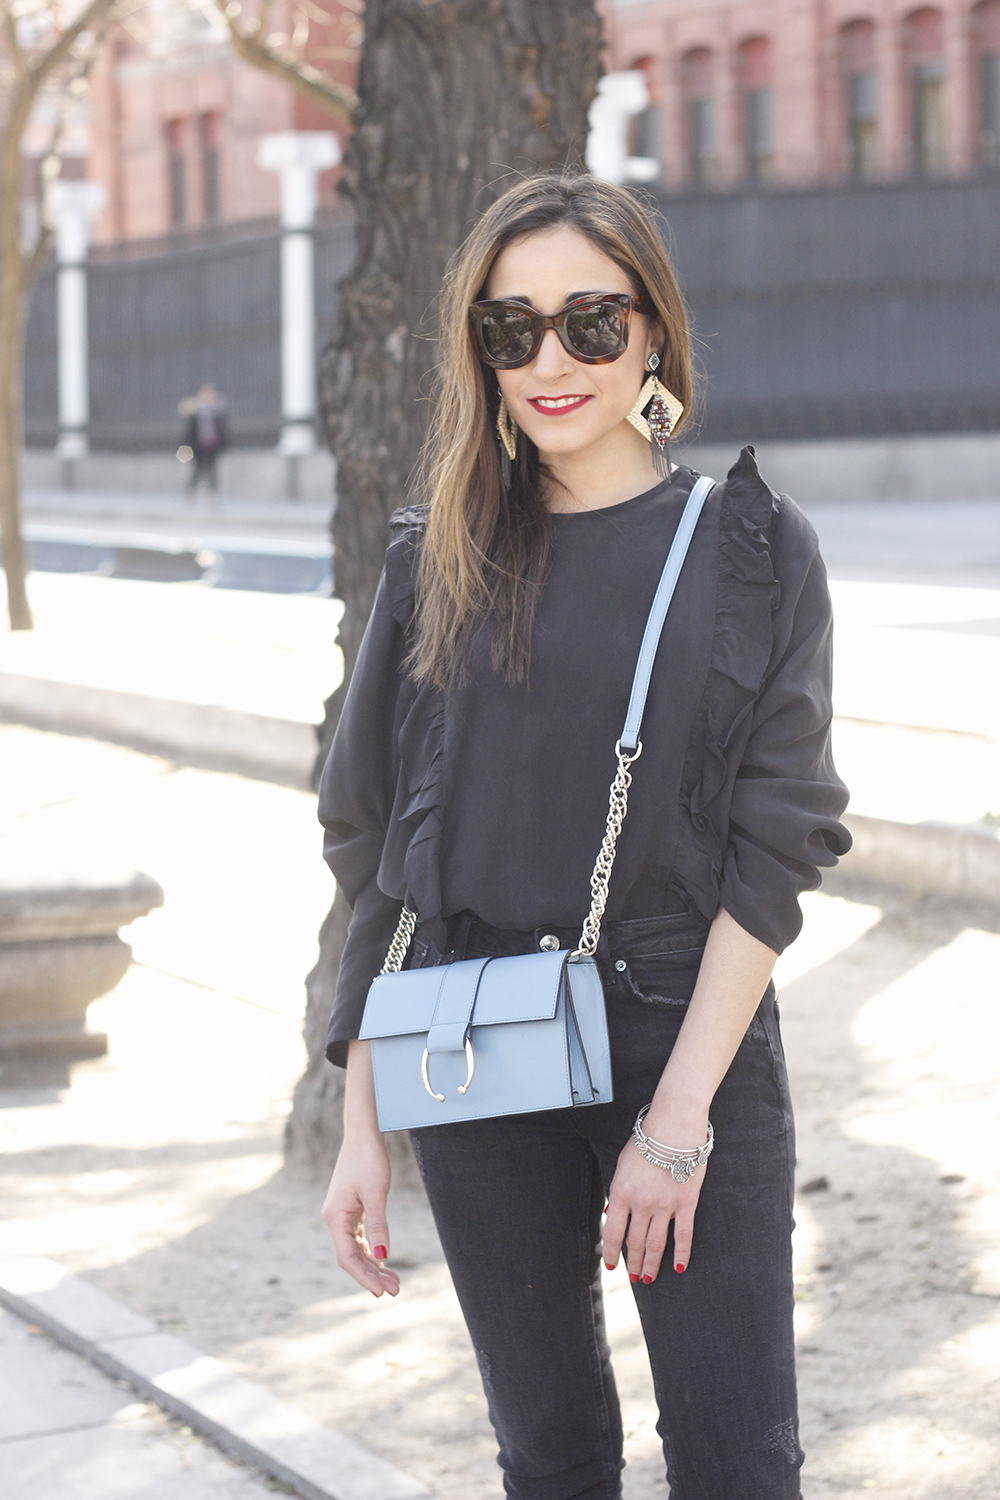 Black ruffled shirt black jeans uterqüe bag earrings sandals outfit style fashion céline sunnies spring07